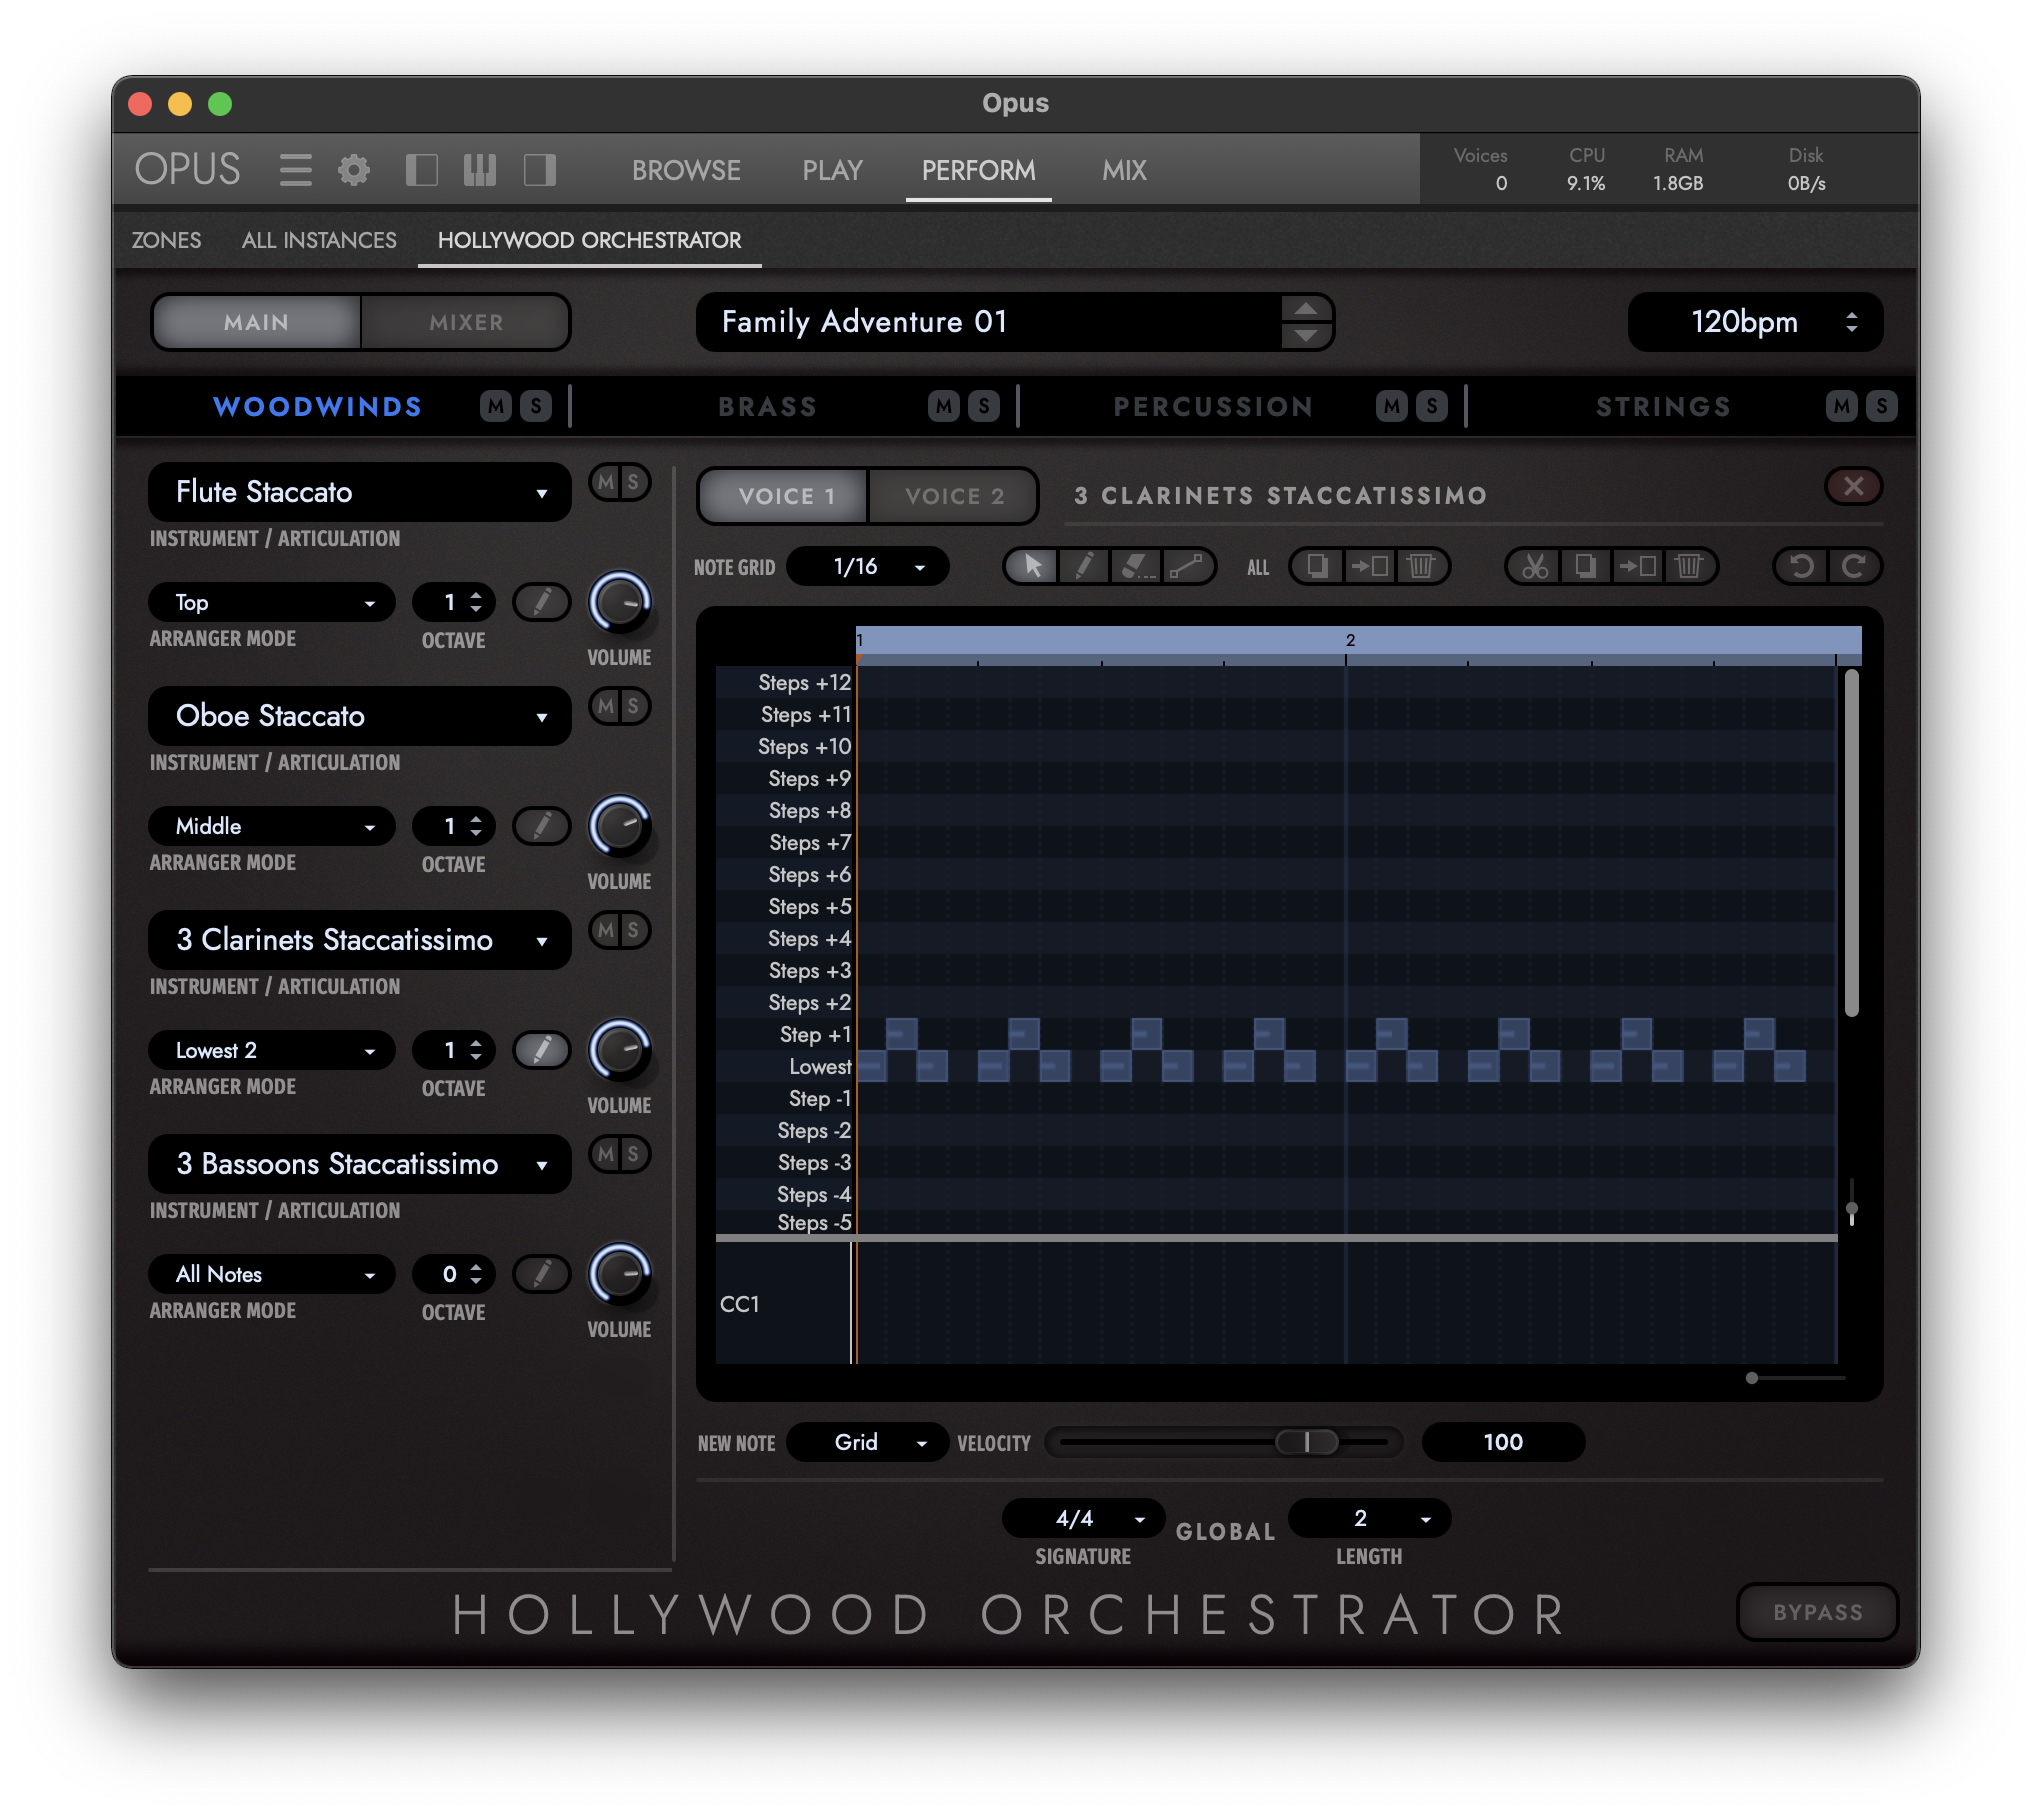 Hollywood Orchestrator - Midi Edit View